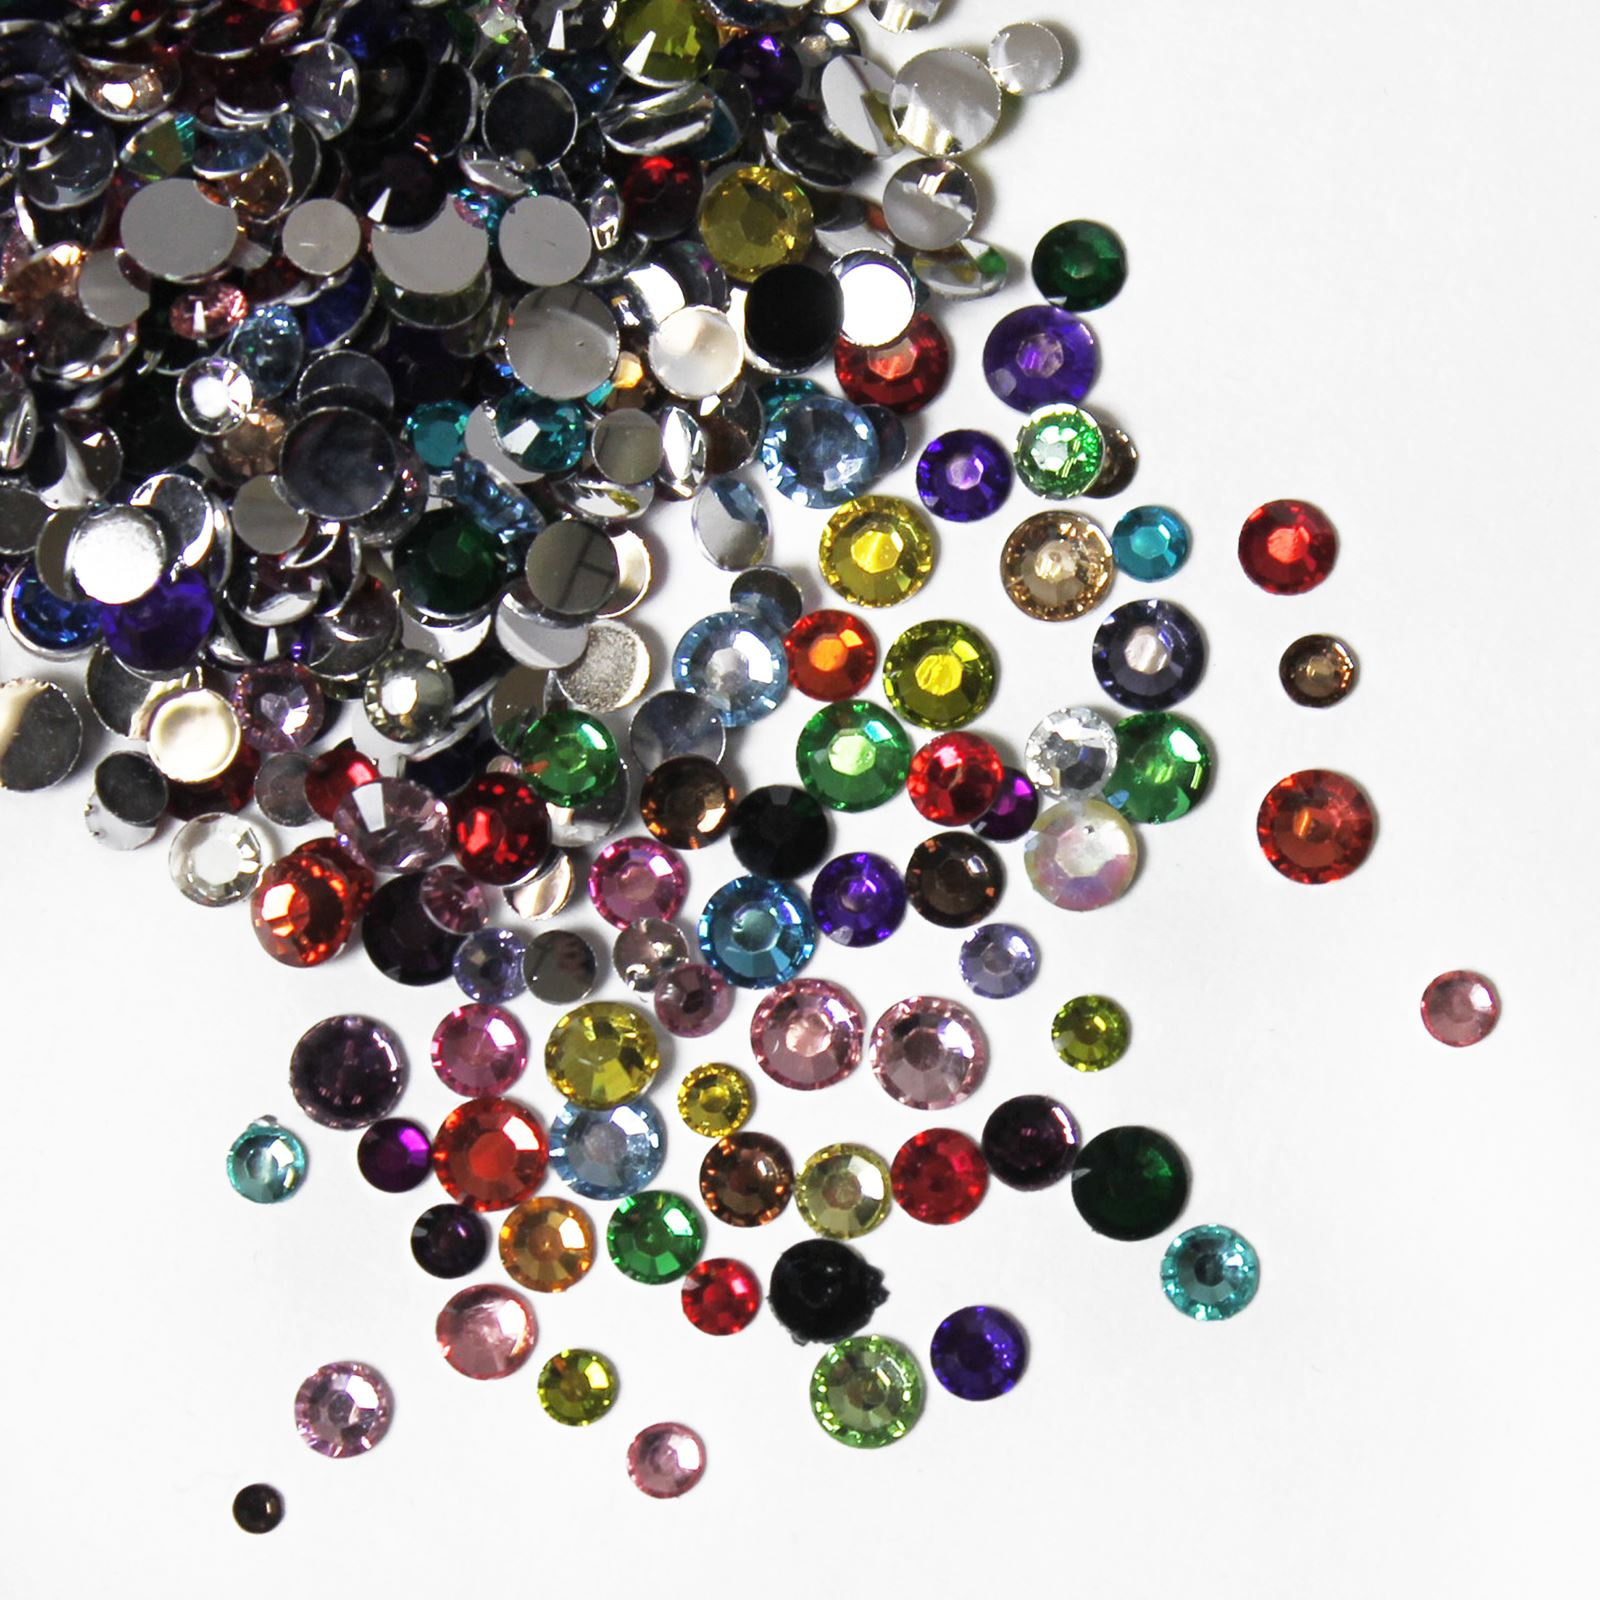 1000-High-Quality-Resin-Crystal-Flat-Back-Rhinestone-Gems-Nail-Art-Craft-Face